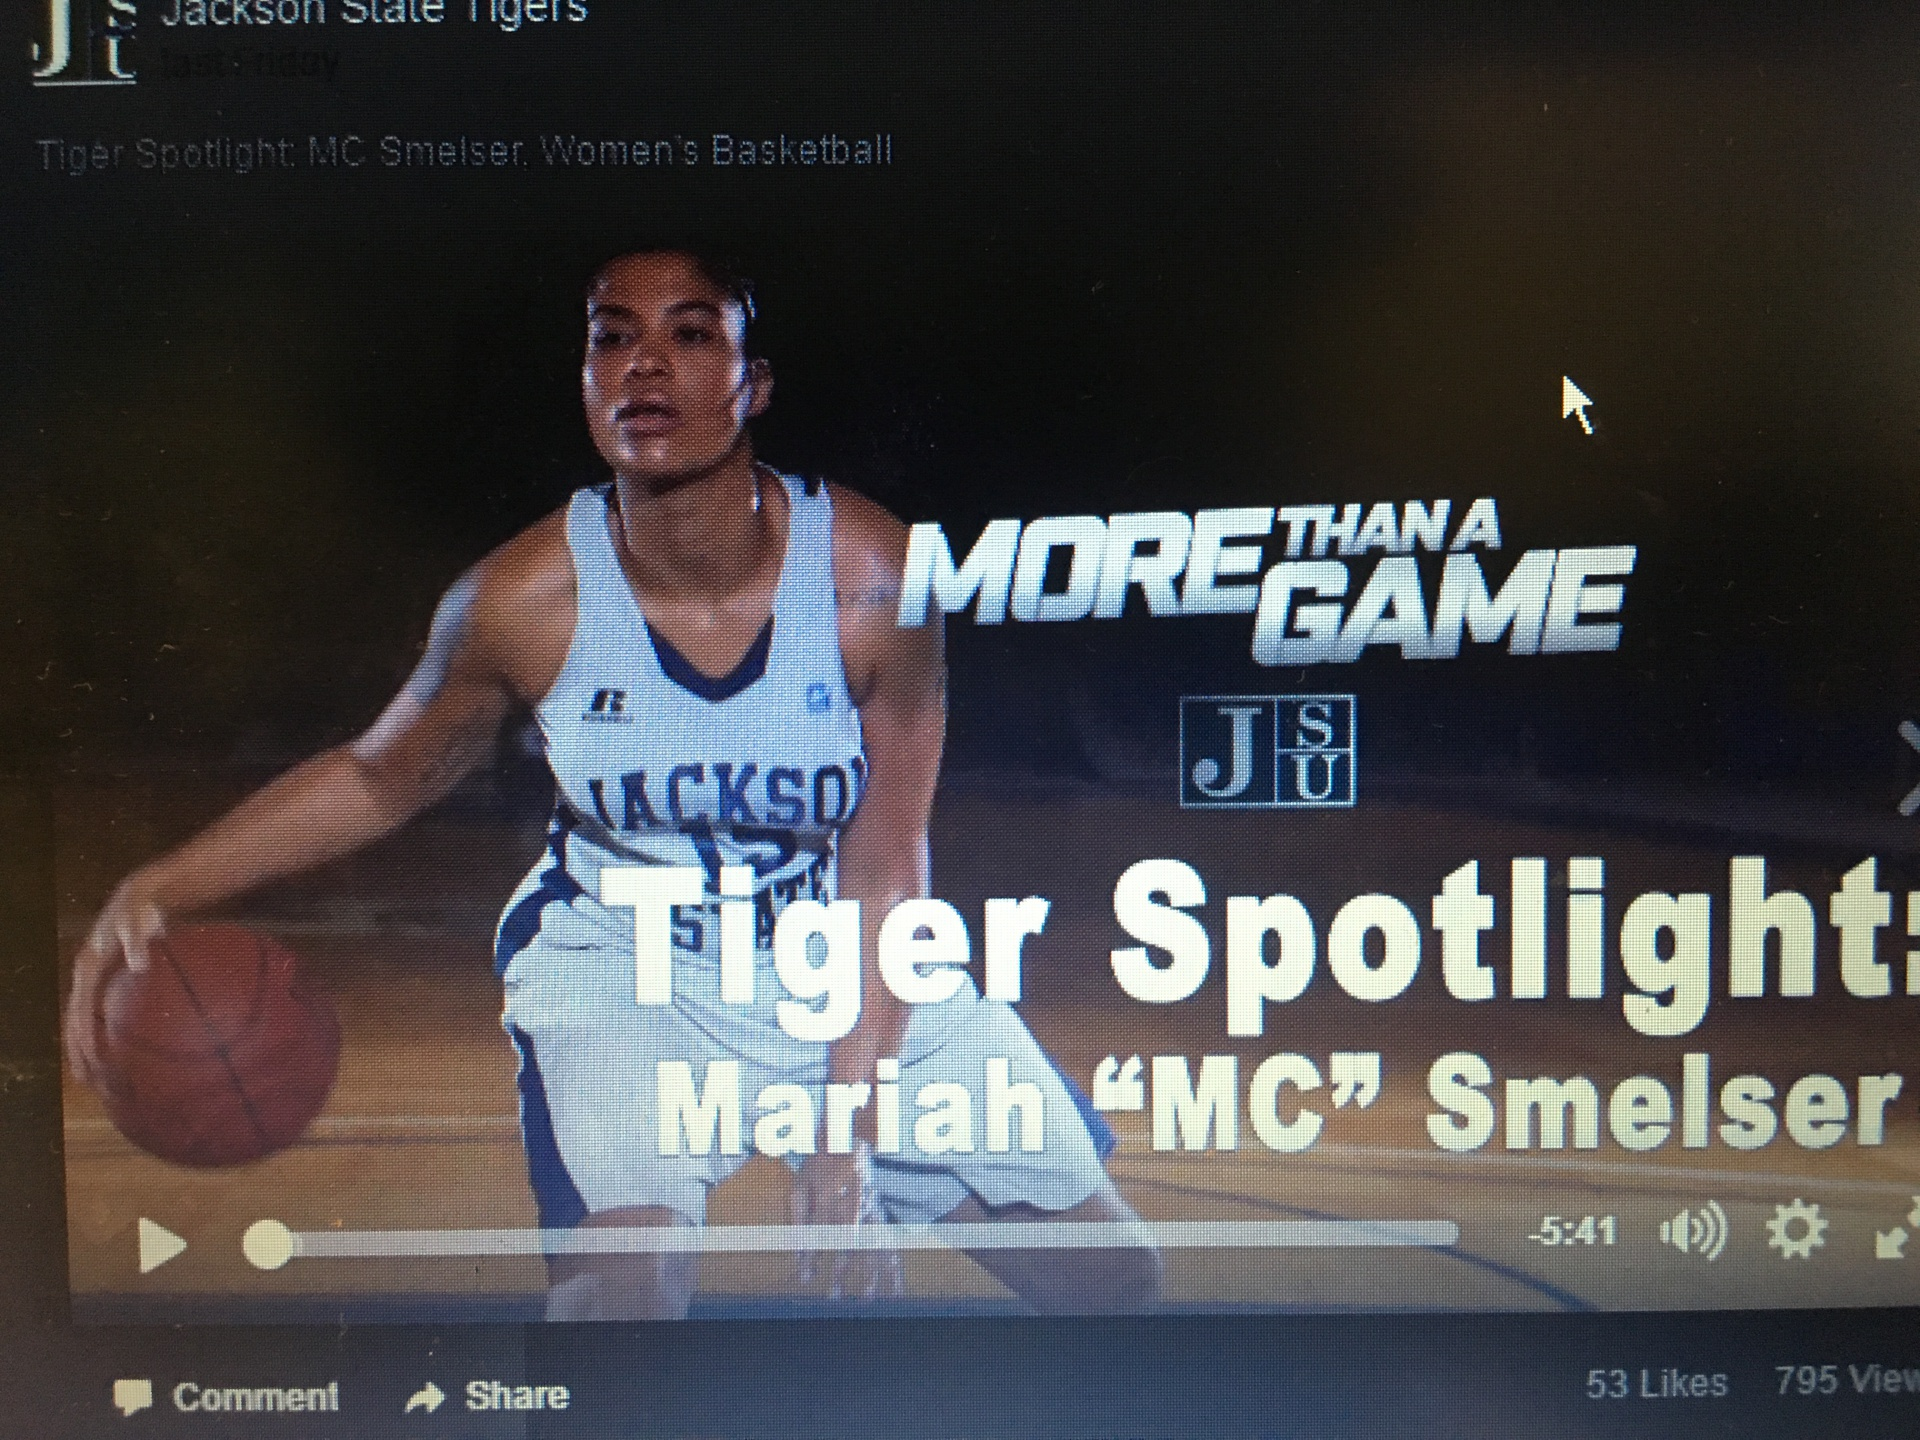 Tigers Spotlight: MC Smelser, Women's Basketball